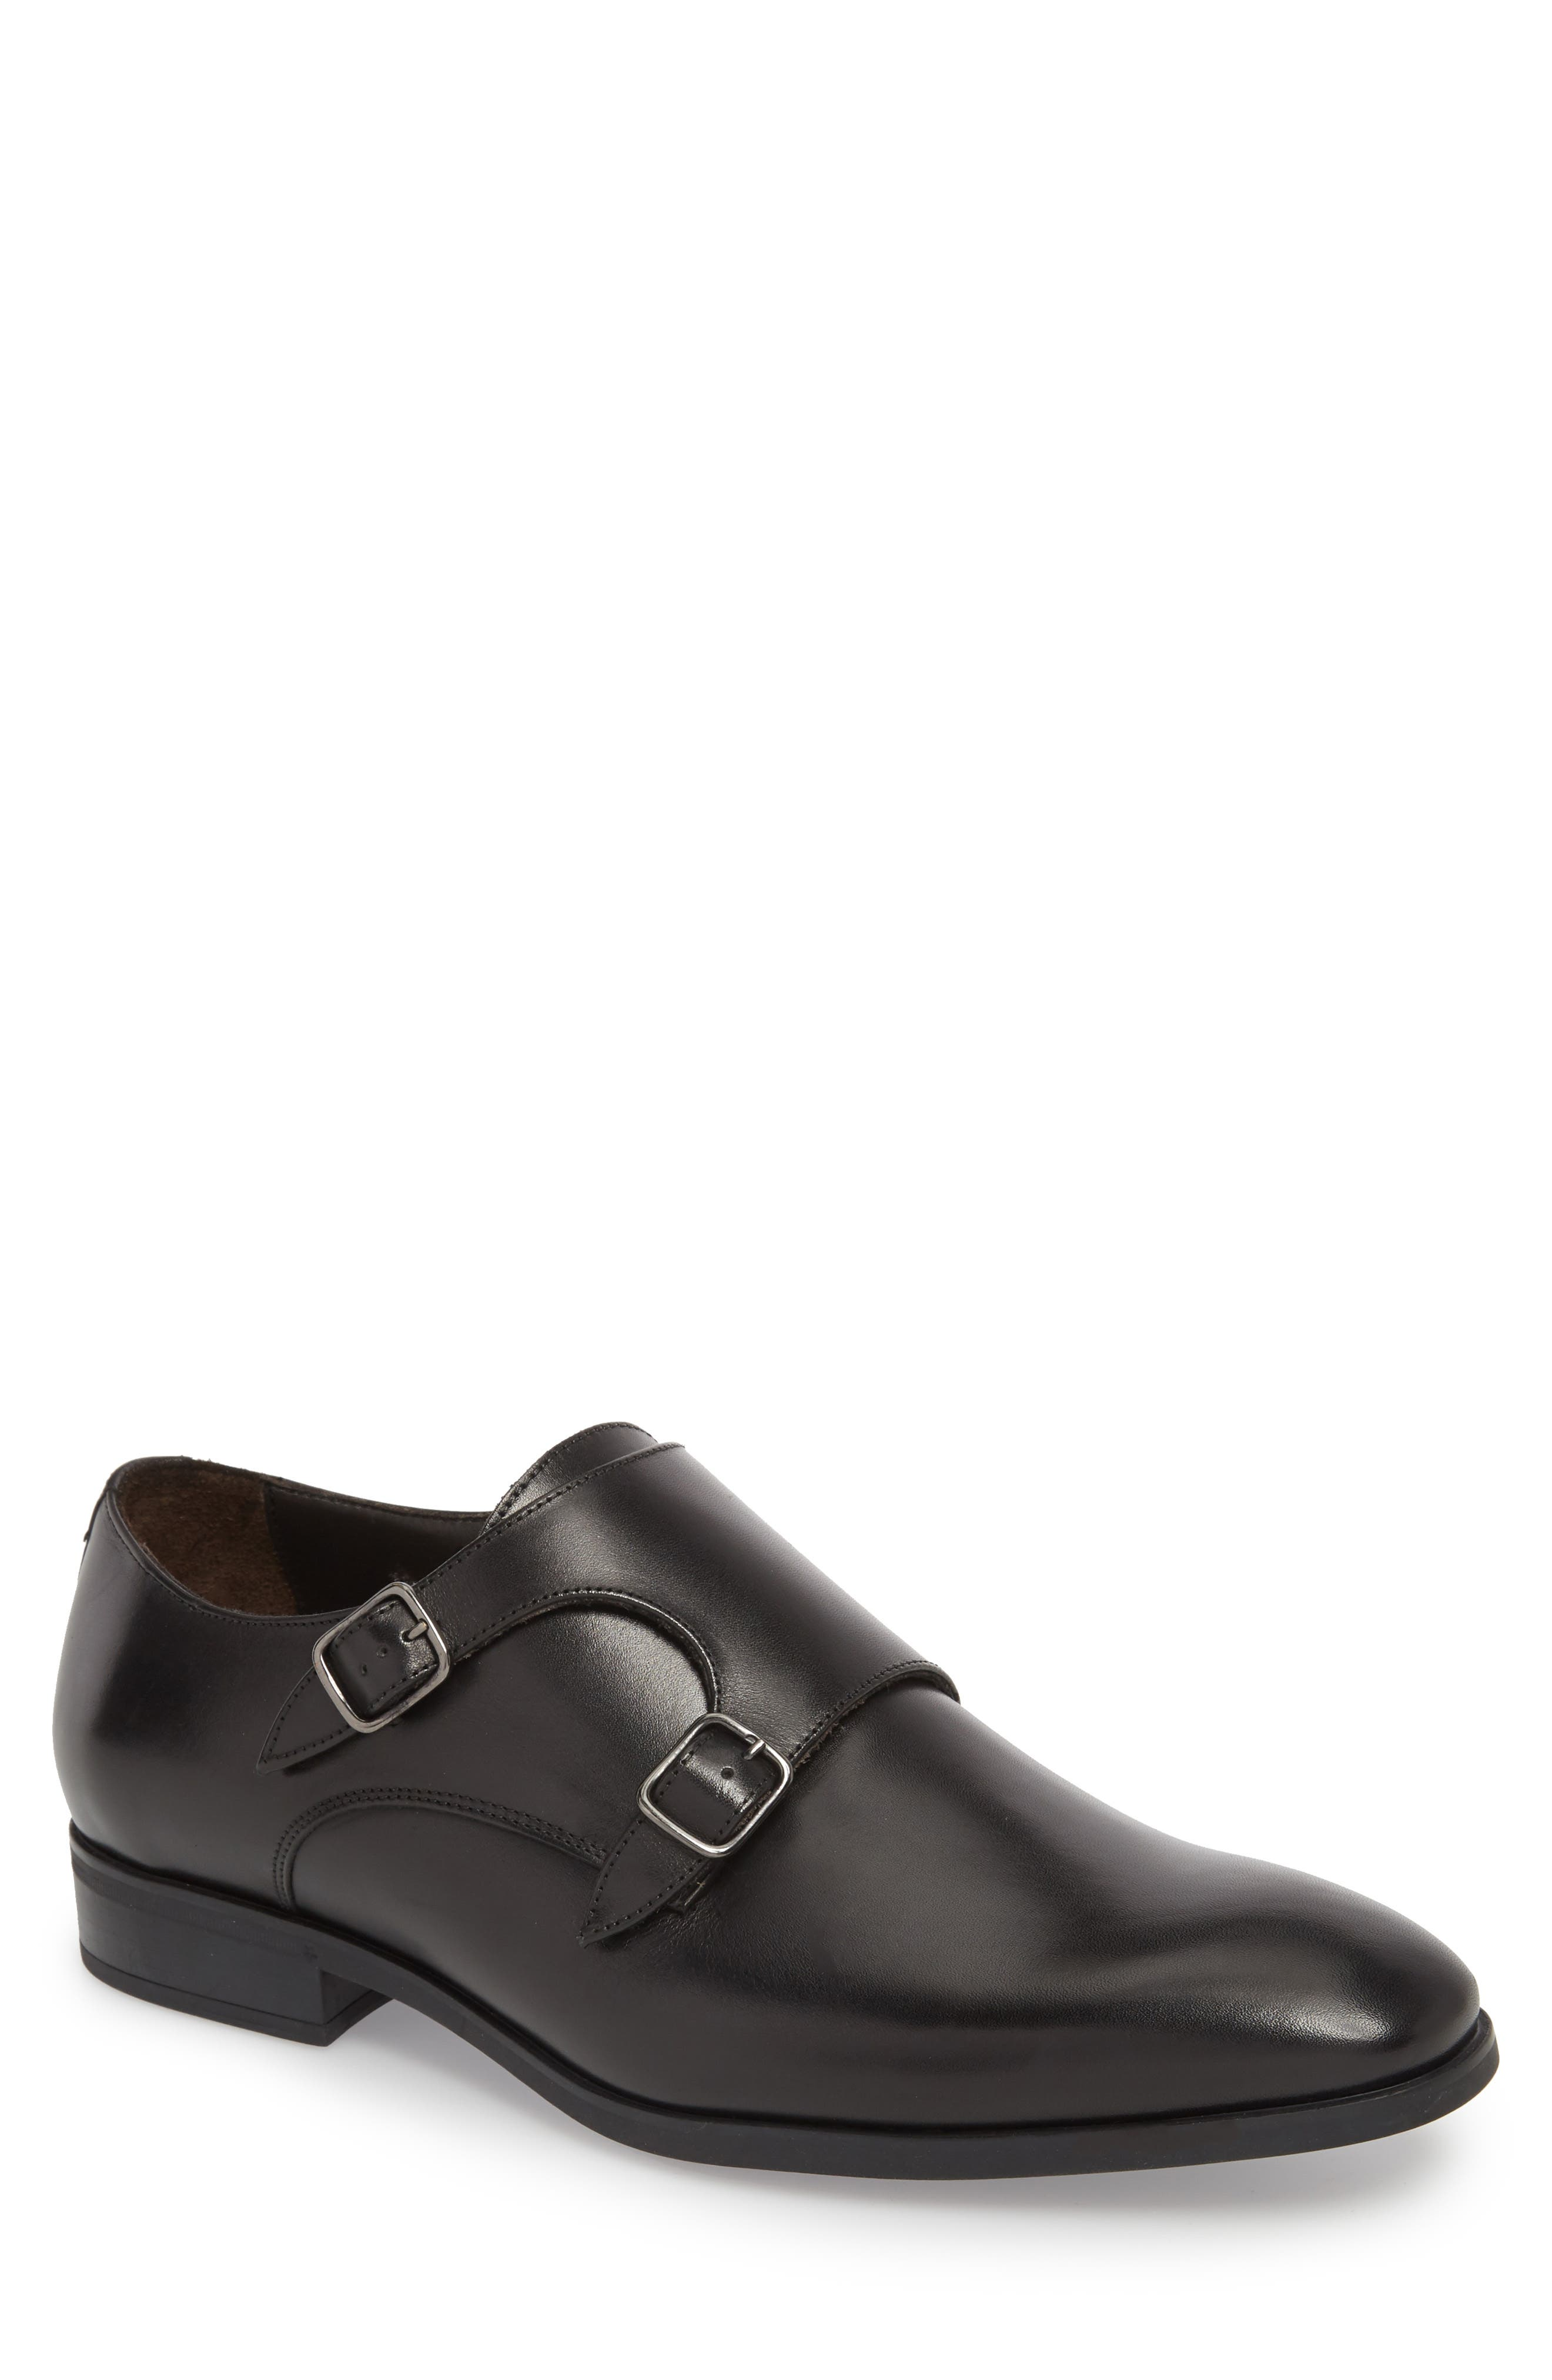 To Boot New York Benjamin Double Monk Strap Shoe, Black